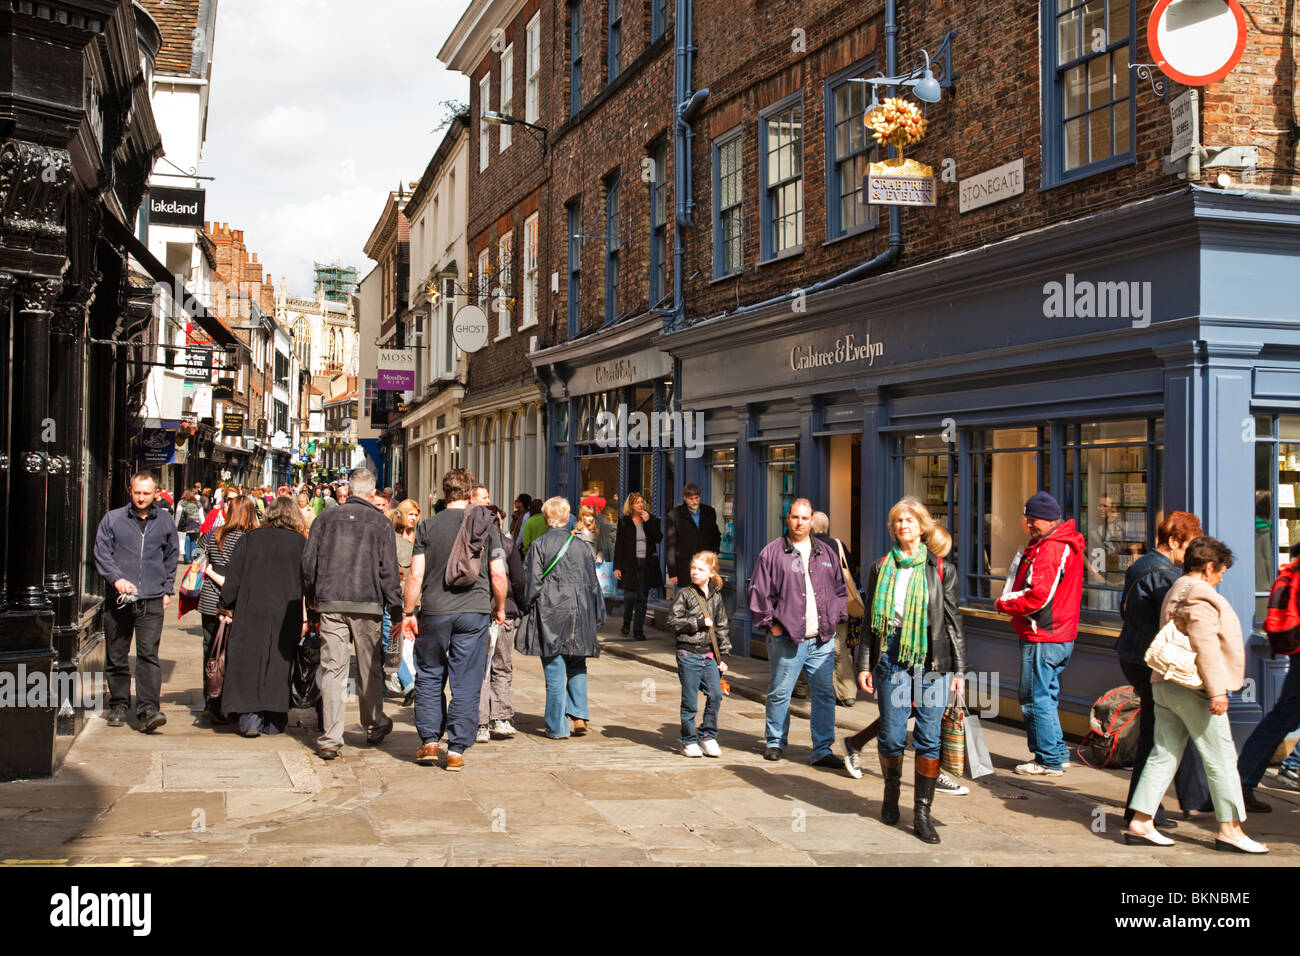 View along the bustling Stonegate in the centre of York city, Yorkshire, Uk - Stock Image